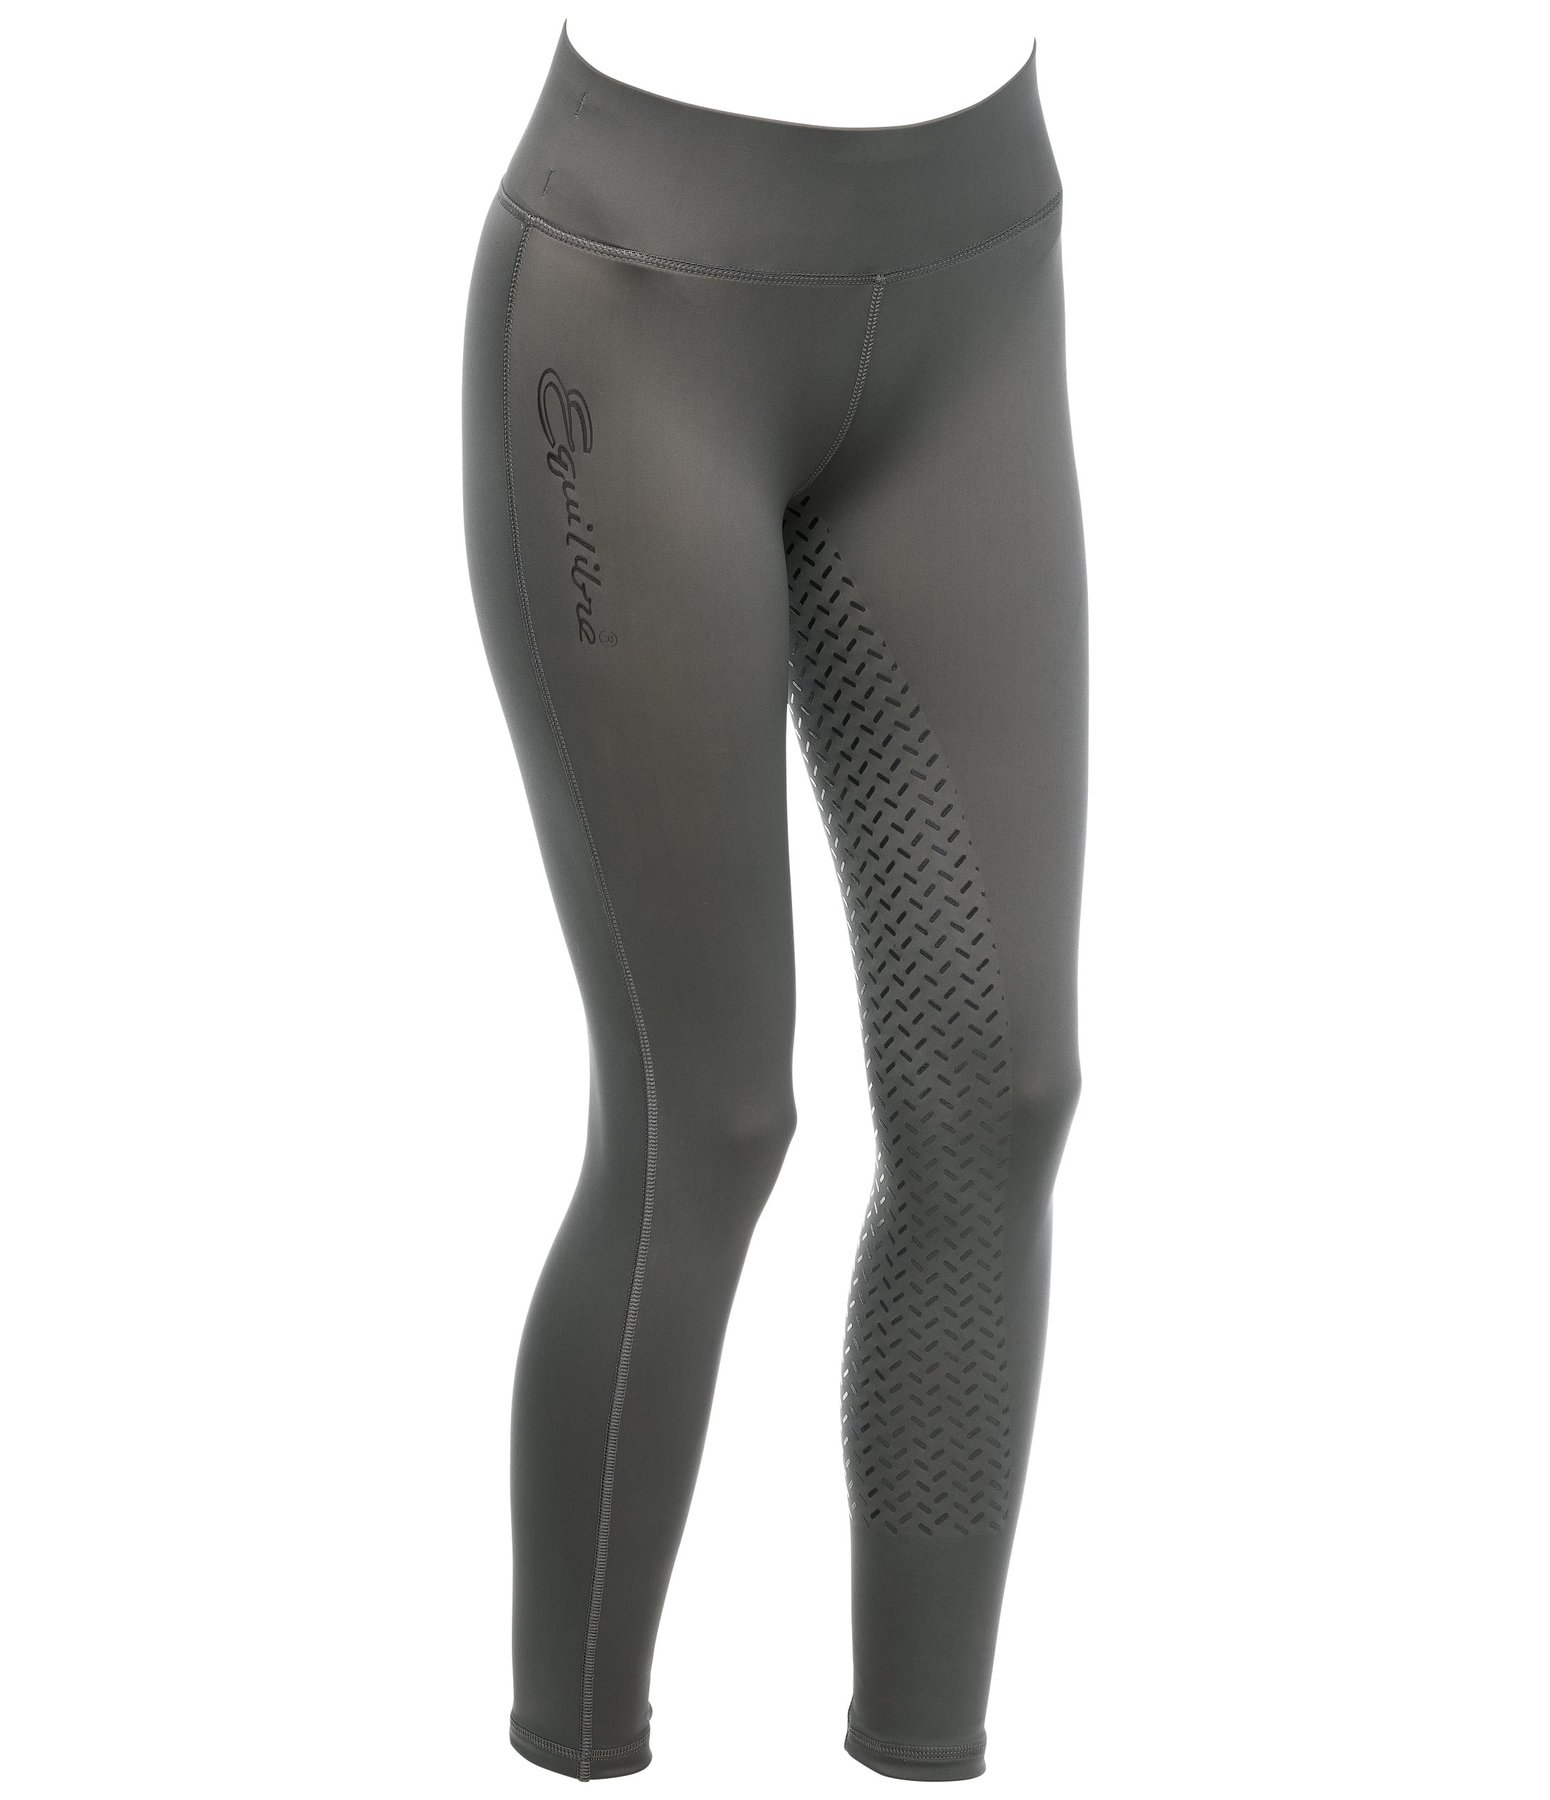 Grip-Vollbesatz-Reitleggings Marleen